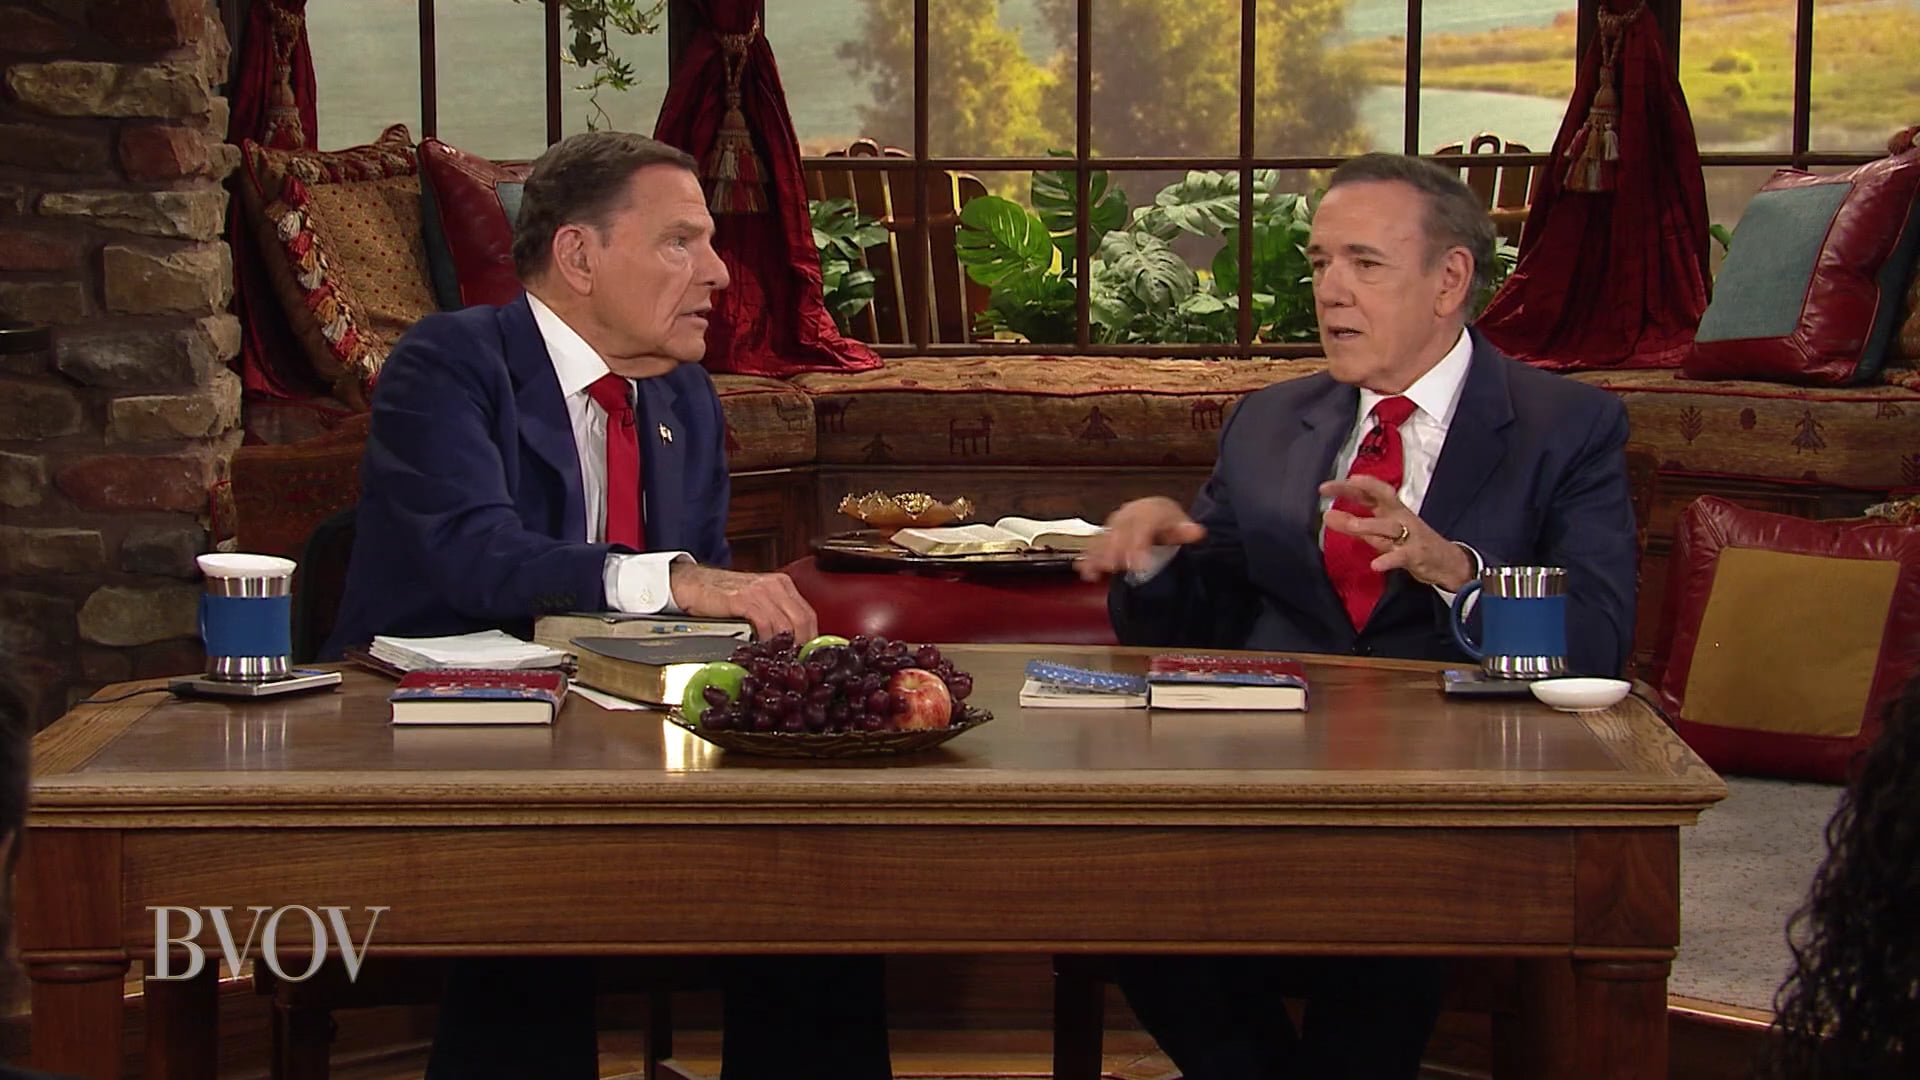 Do you know the truth about Donald Trump? Watch Kenneth Copeland and Stephen Strang on Believer's Voice of Victory as they discuss the faith of Donald Trump through the years, his inclusion of the faith community, and his prayer life behind closed doors. Learn how God is using Donald Trump, who was not a politician, just as he used Jehu and Cyrus to impact nations long ago.